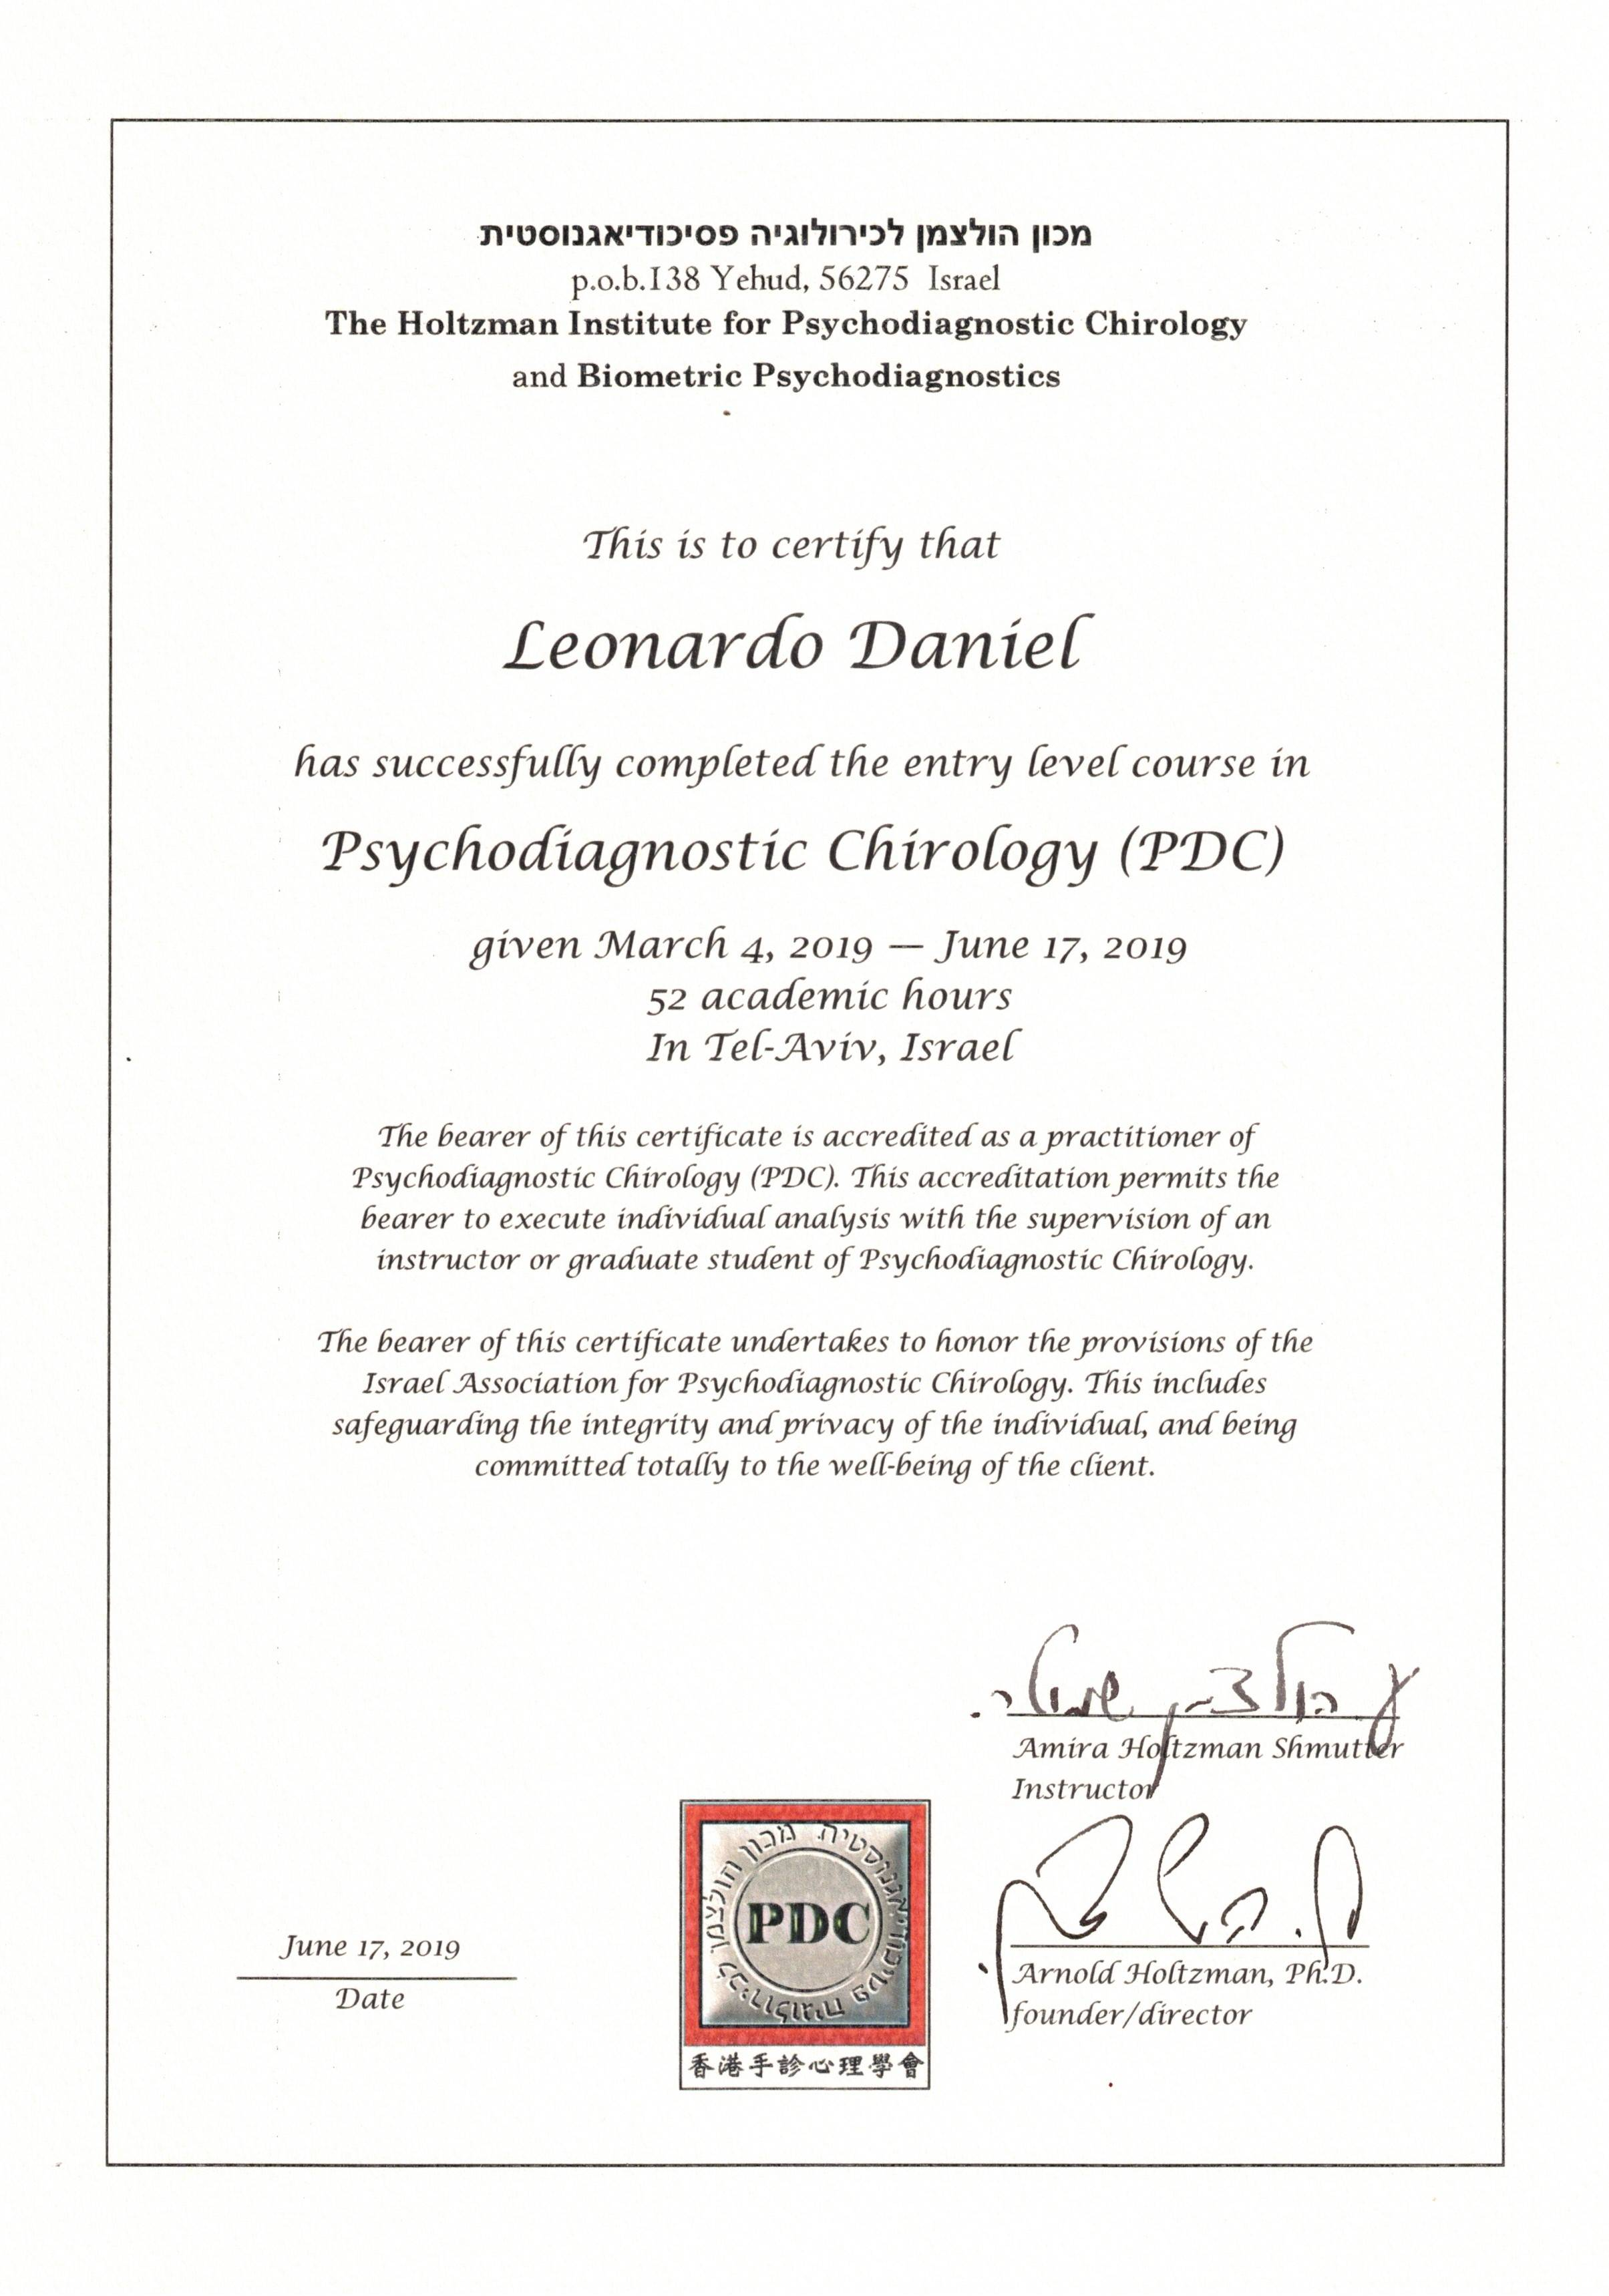 PsychoDiagnostic Chirology